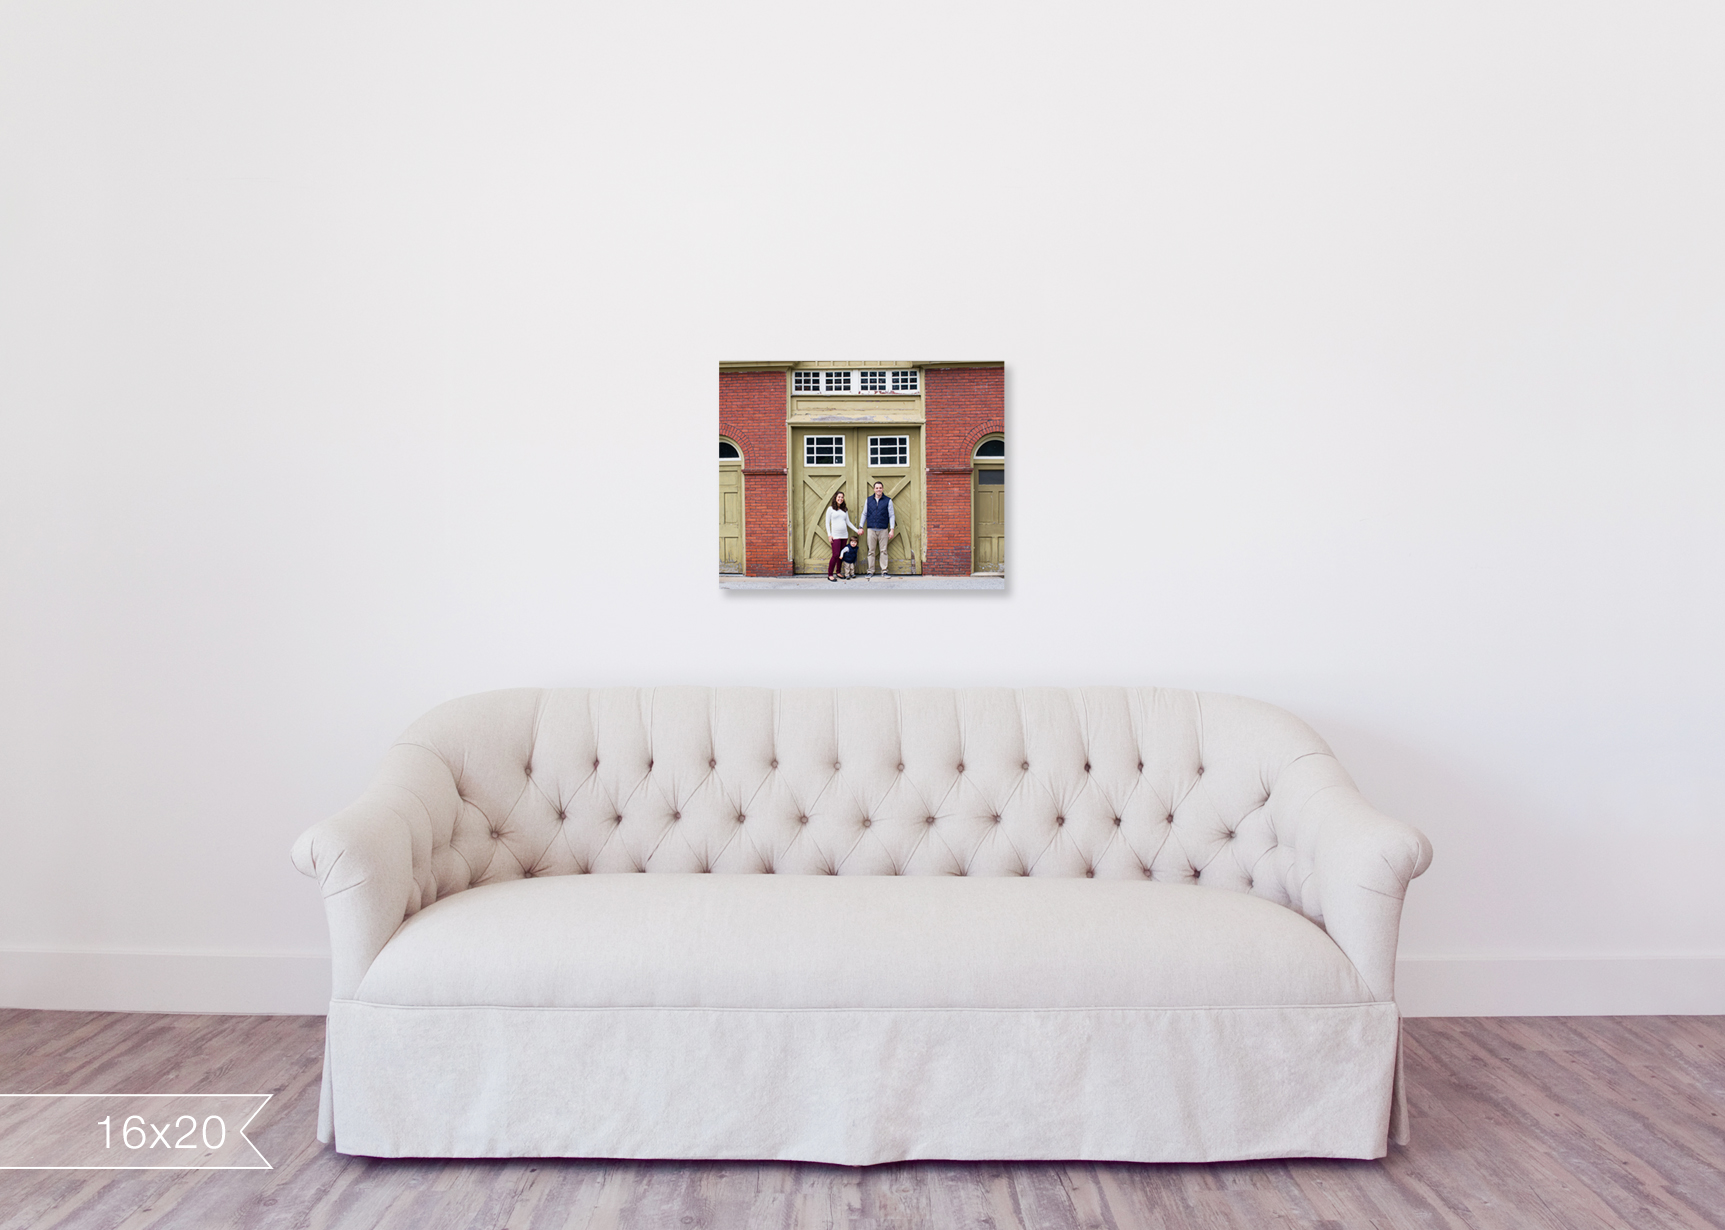 16x20 above couch.jpg